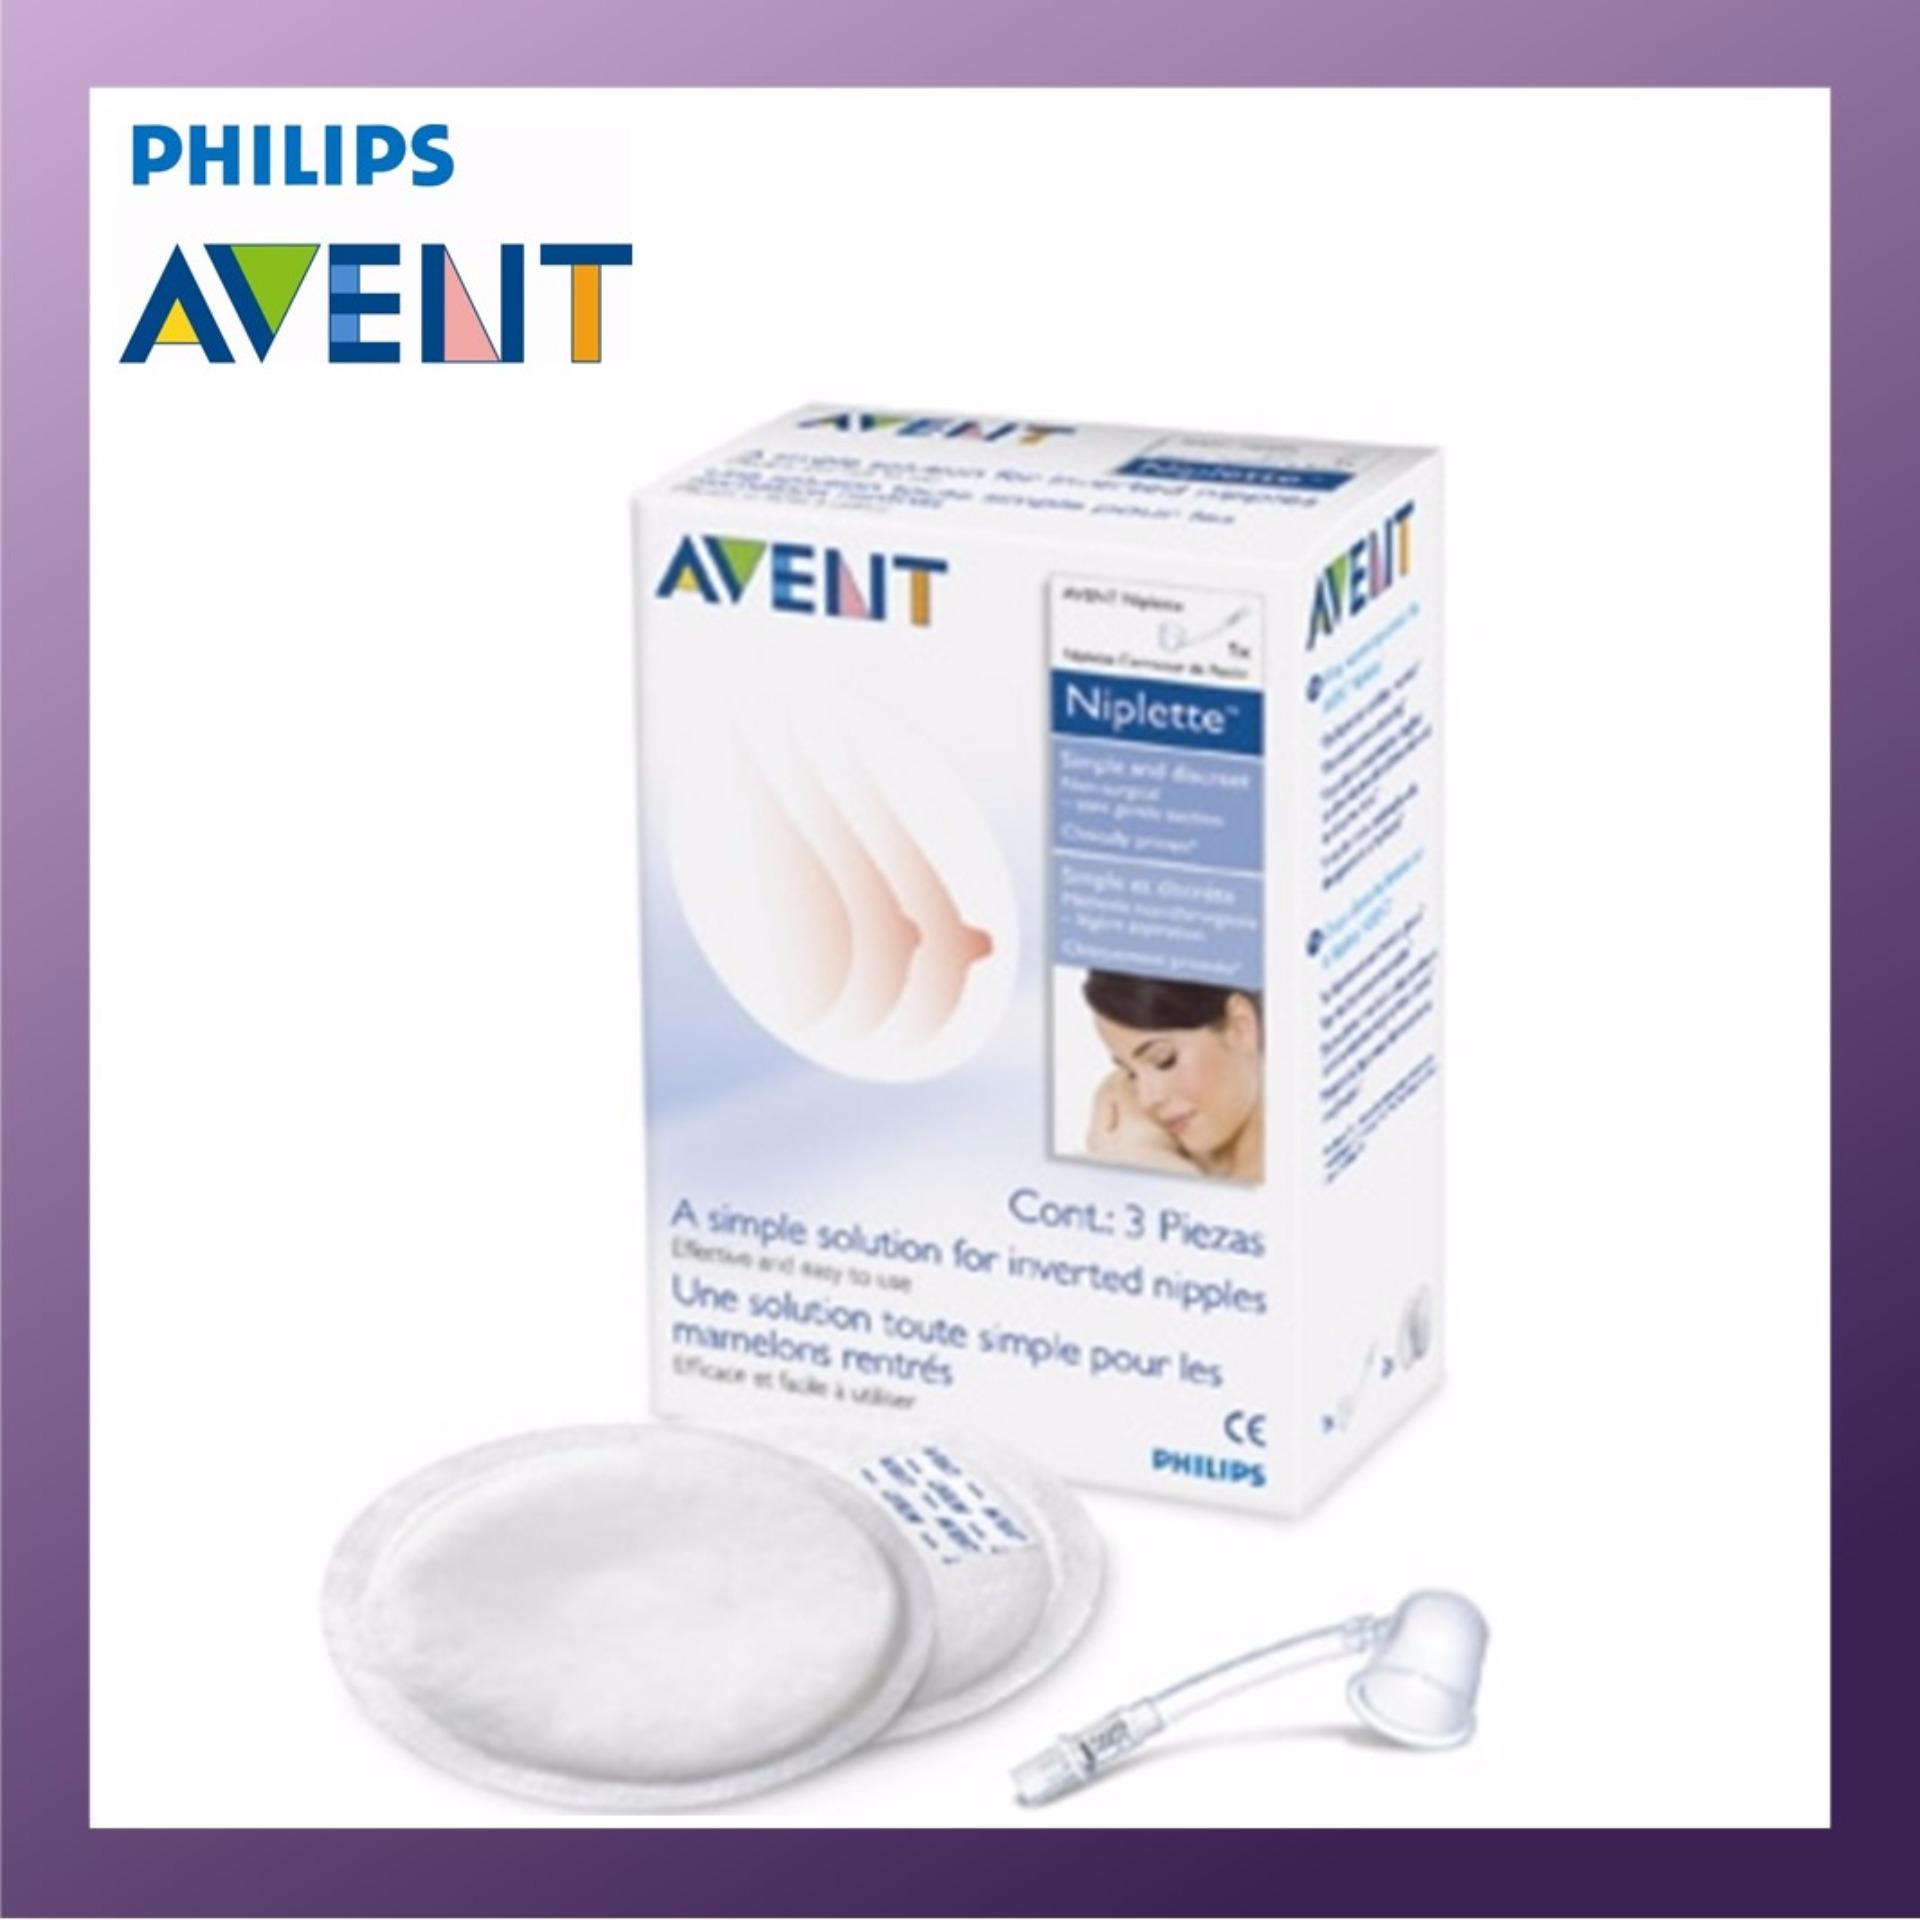 Great Deal Philips Avent Niplette